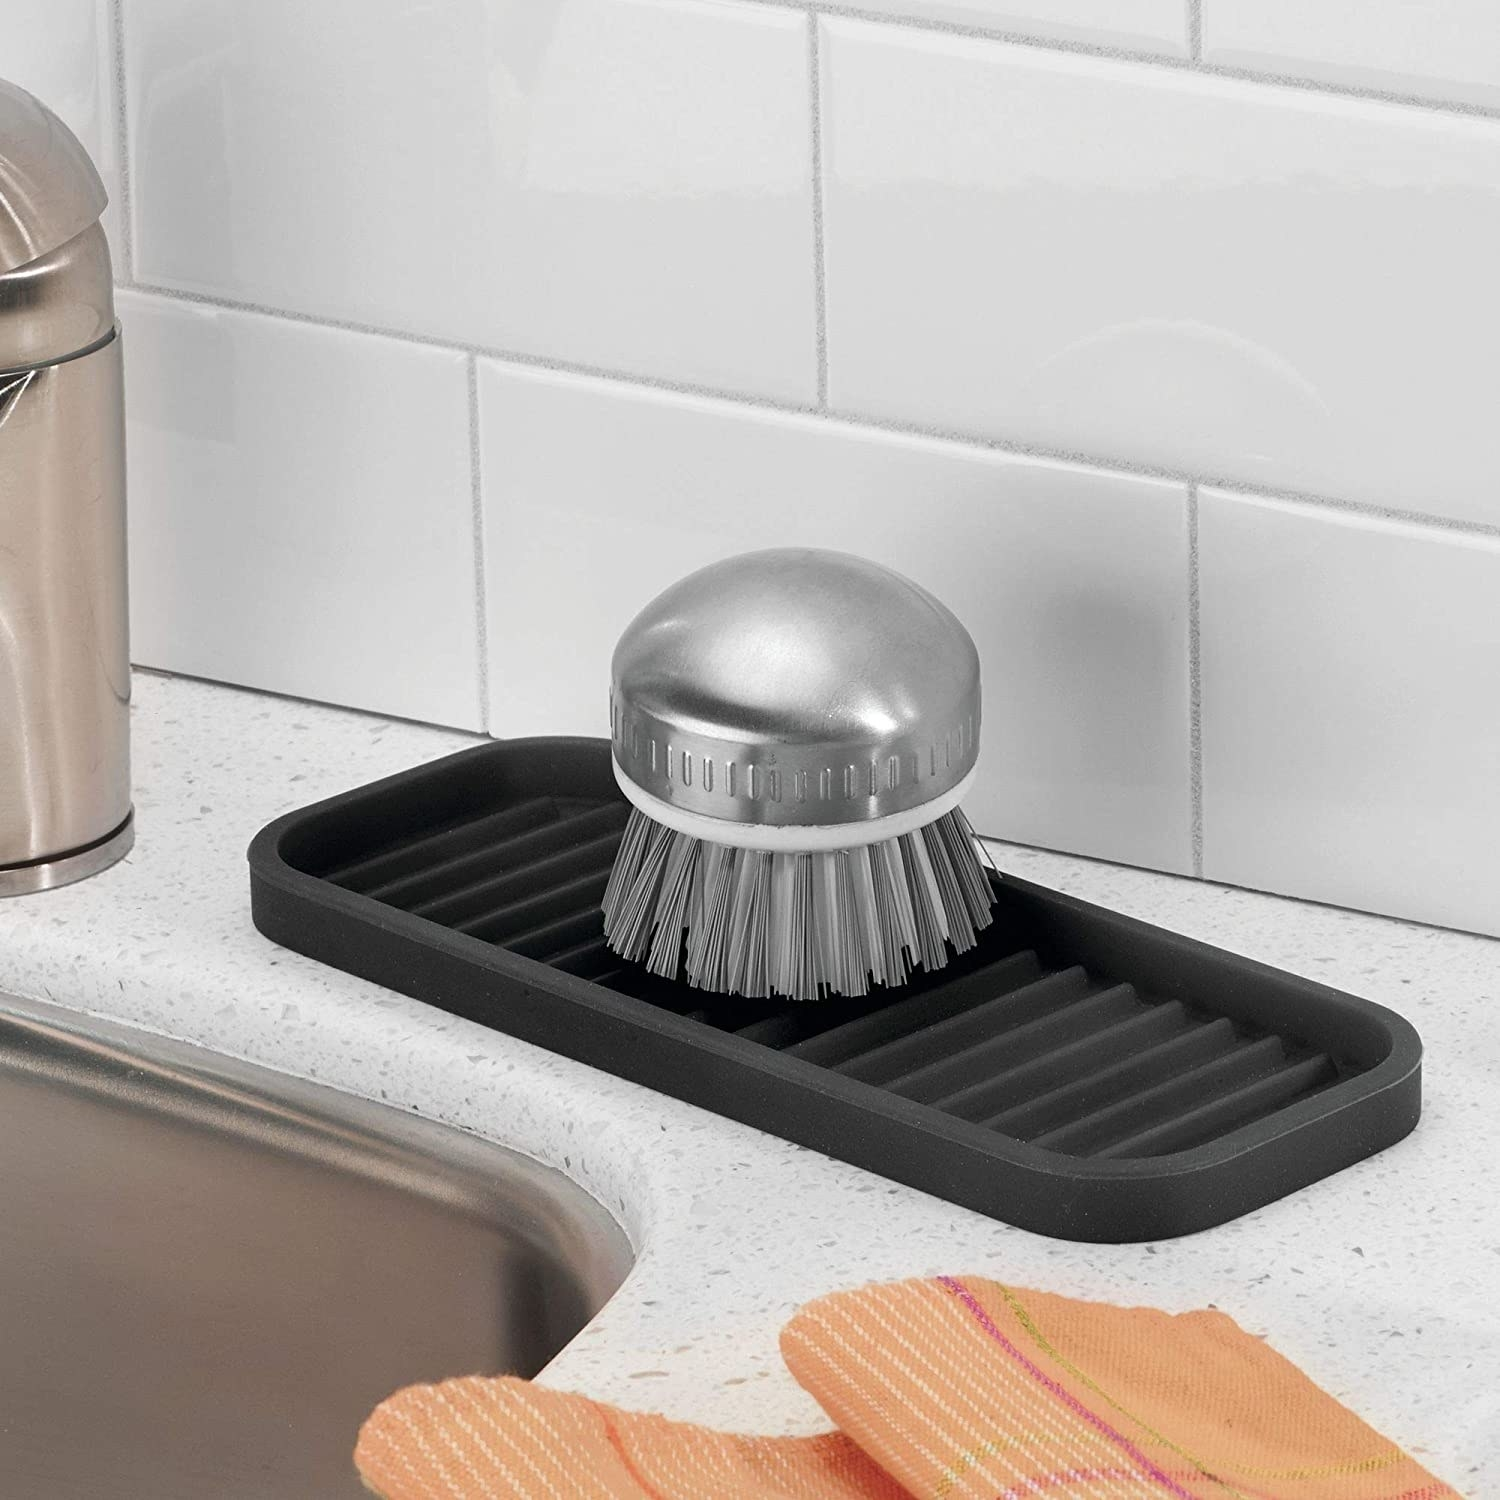 A scrub brush on top of the silicone kitchen sink tray